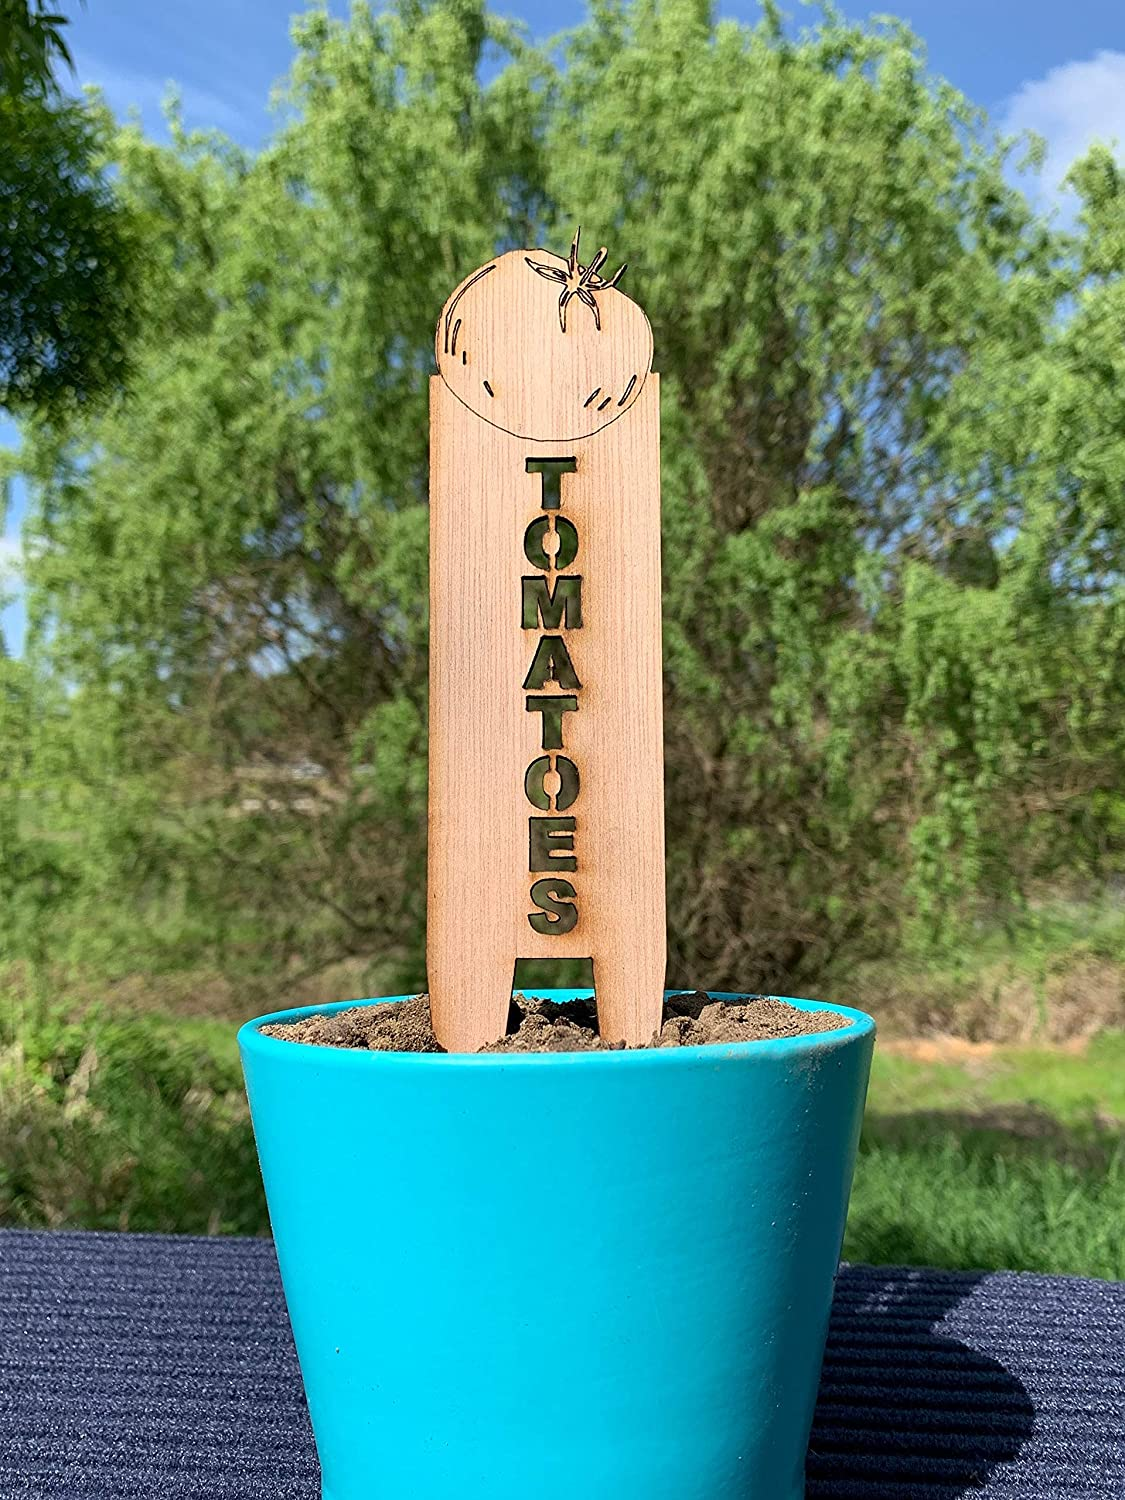 Tomatoes, Garden Stakes, Vegetable Markers, Plant Stakes, Decorative Garden Markers, Veggie Sticks, Herb Sticks